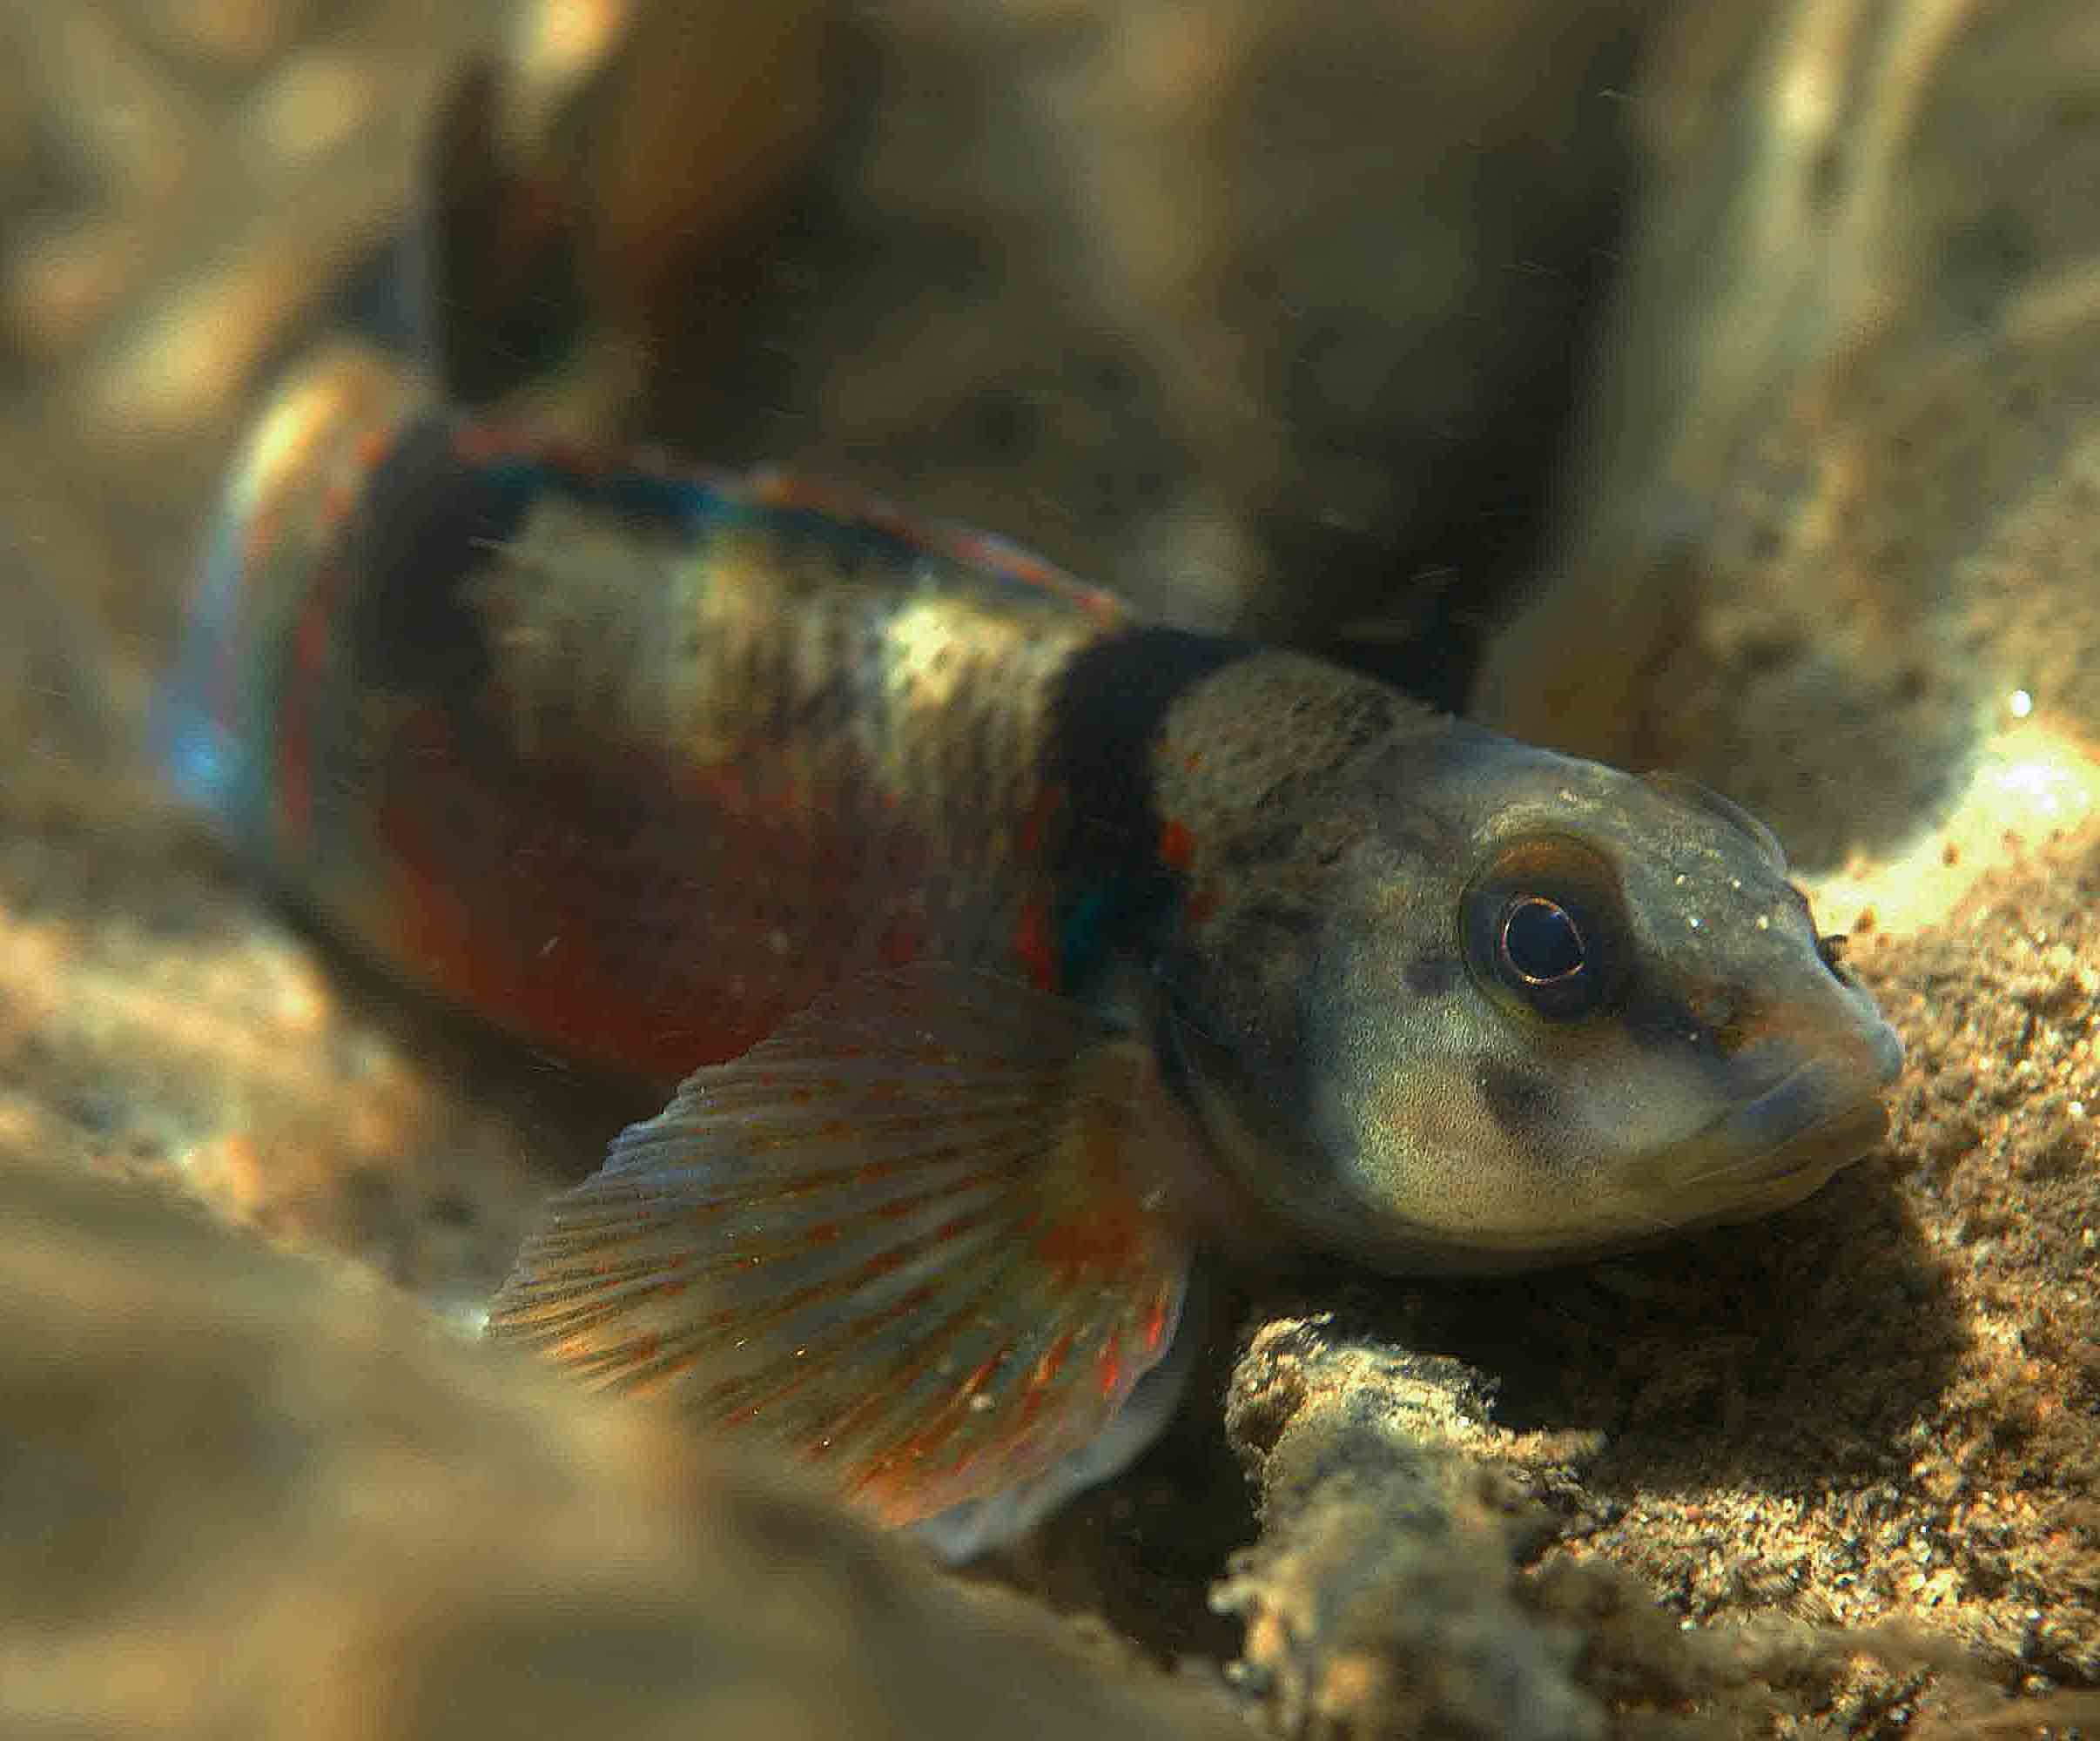 Variegate darter (Etheostoma variatum)n Levisa Fork, Virginia